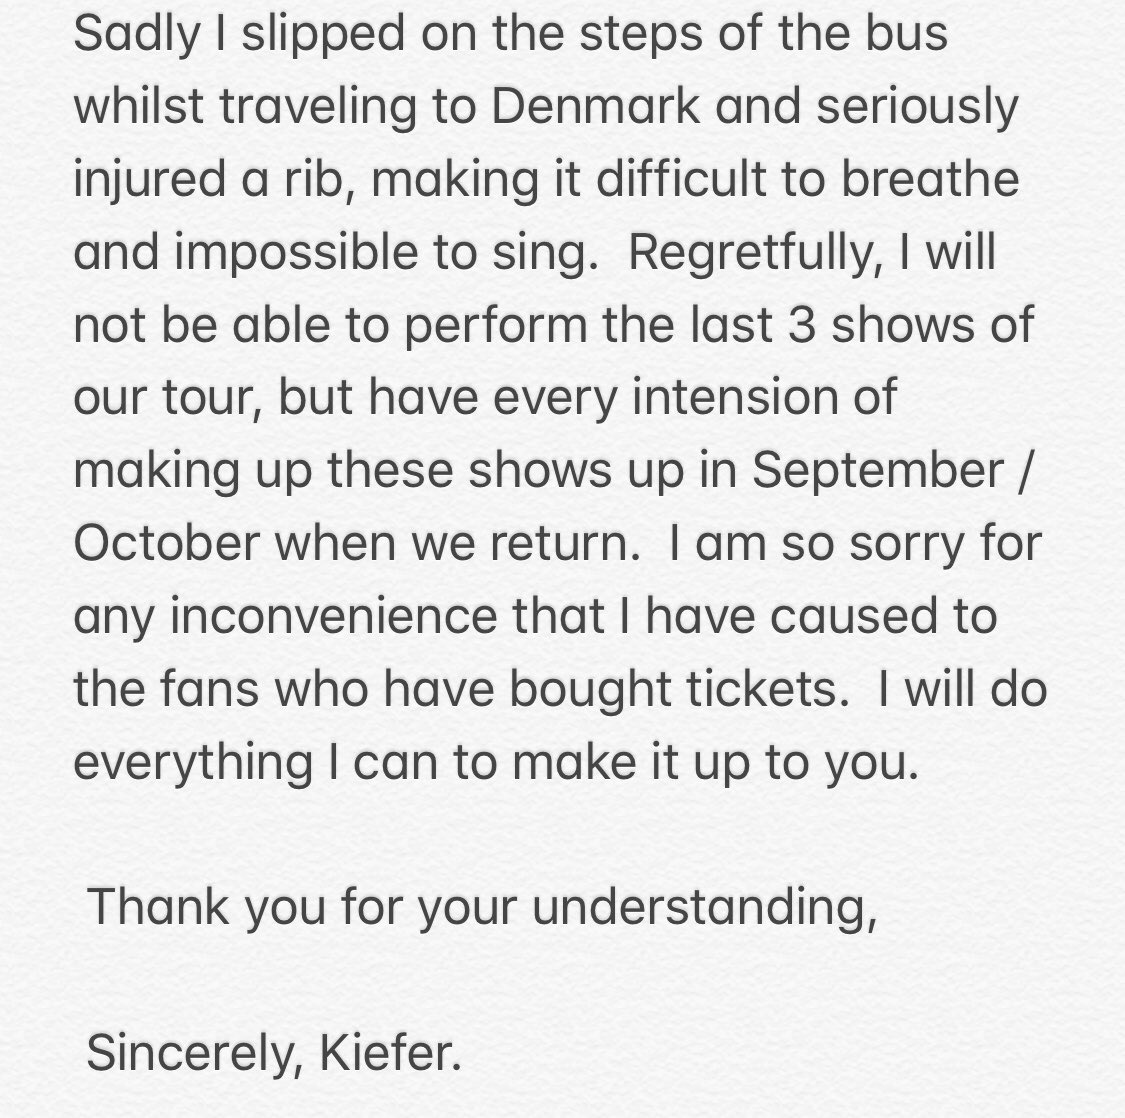 ANNOUNCEMENT: Make up dates in September to be announced shortly. My sincere apologies, Kiefer